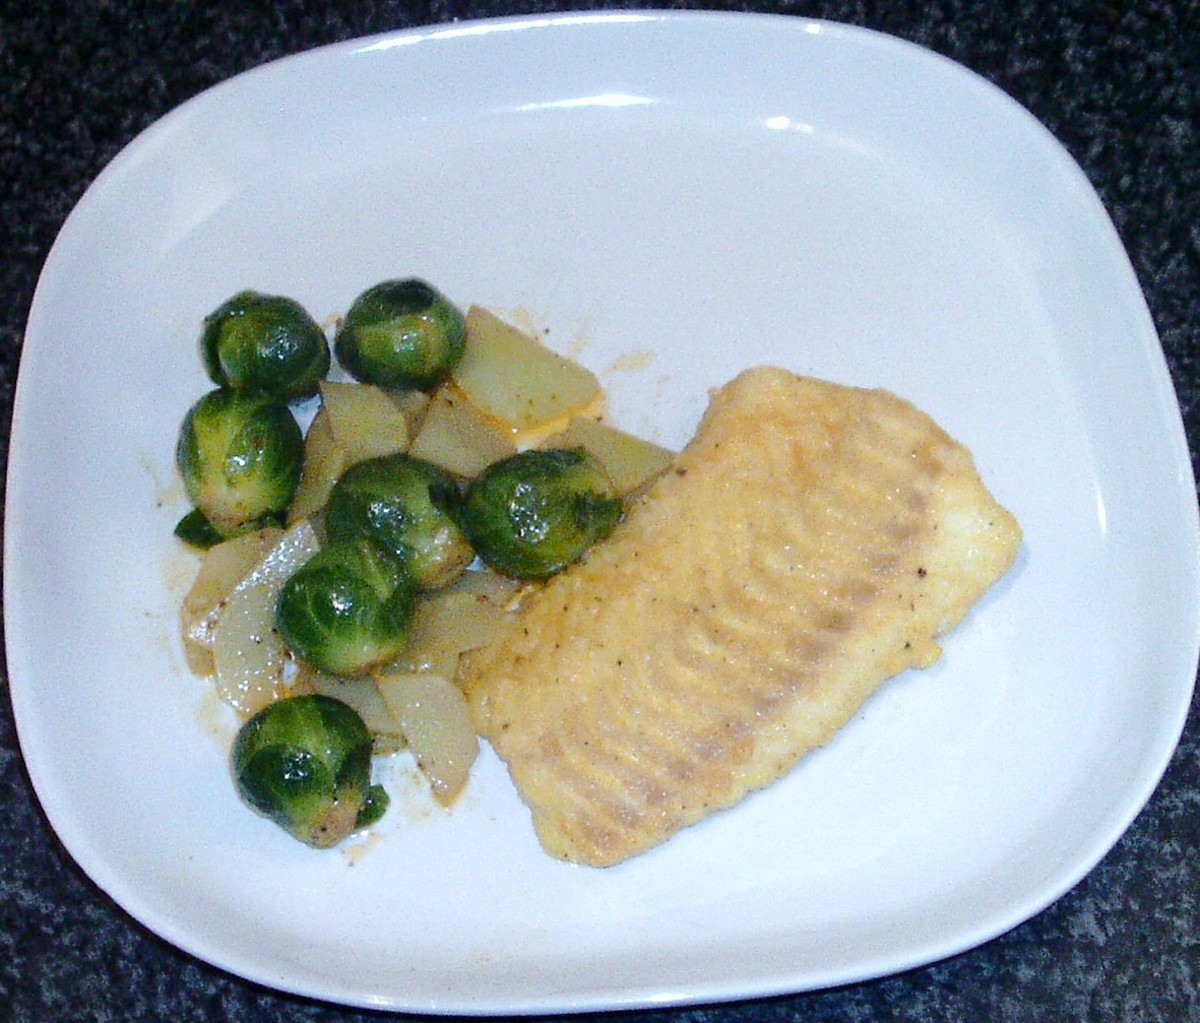 Cod, celtuce and sprouts are plated